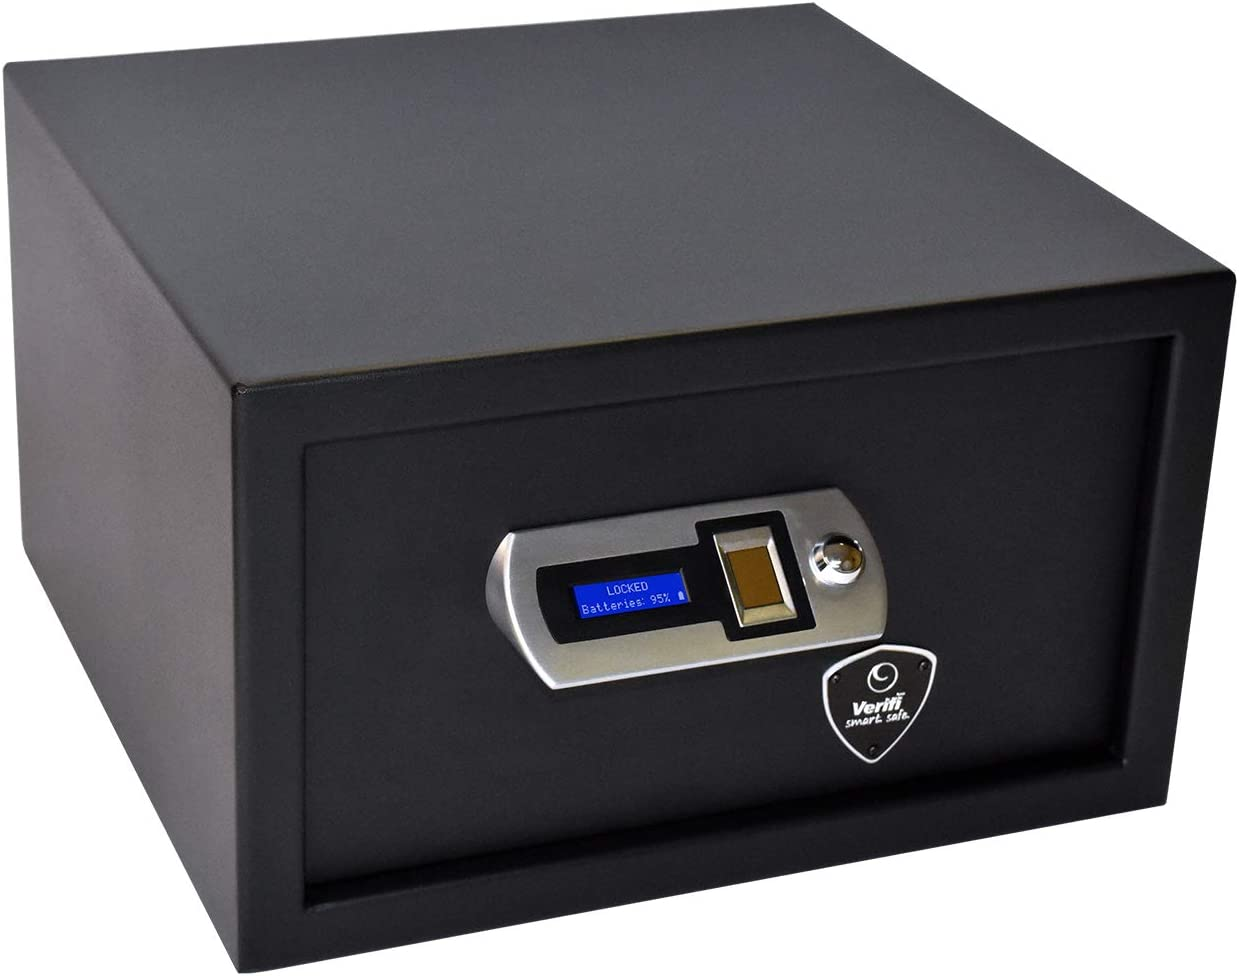 Verifi Smart.Safe. Biometric Gun Safe S5000